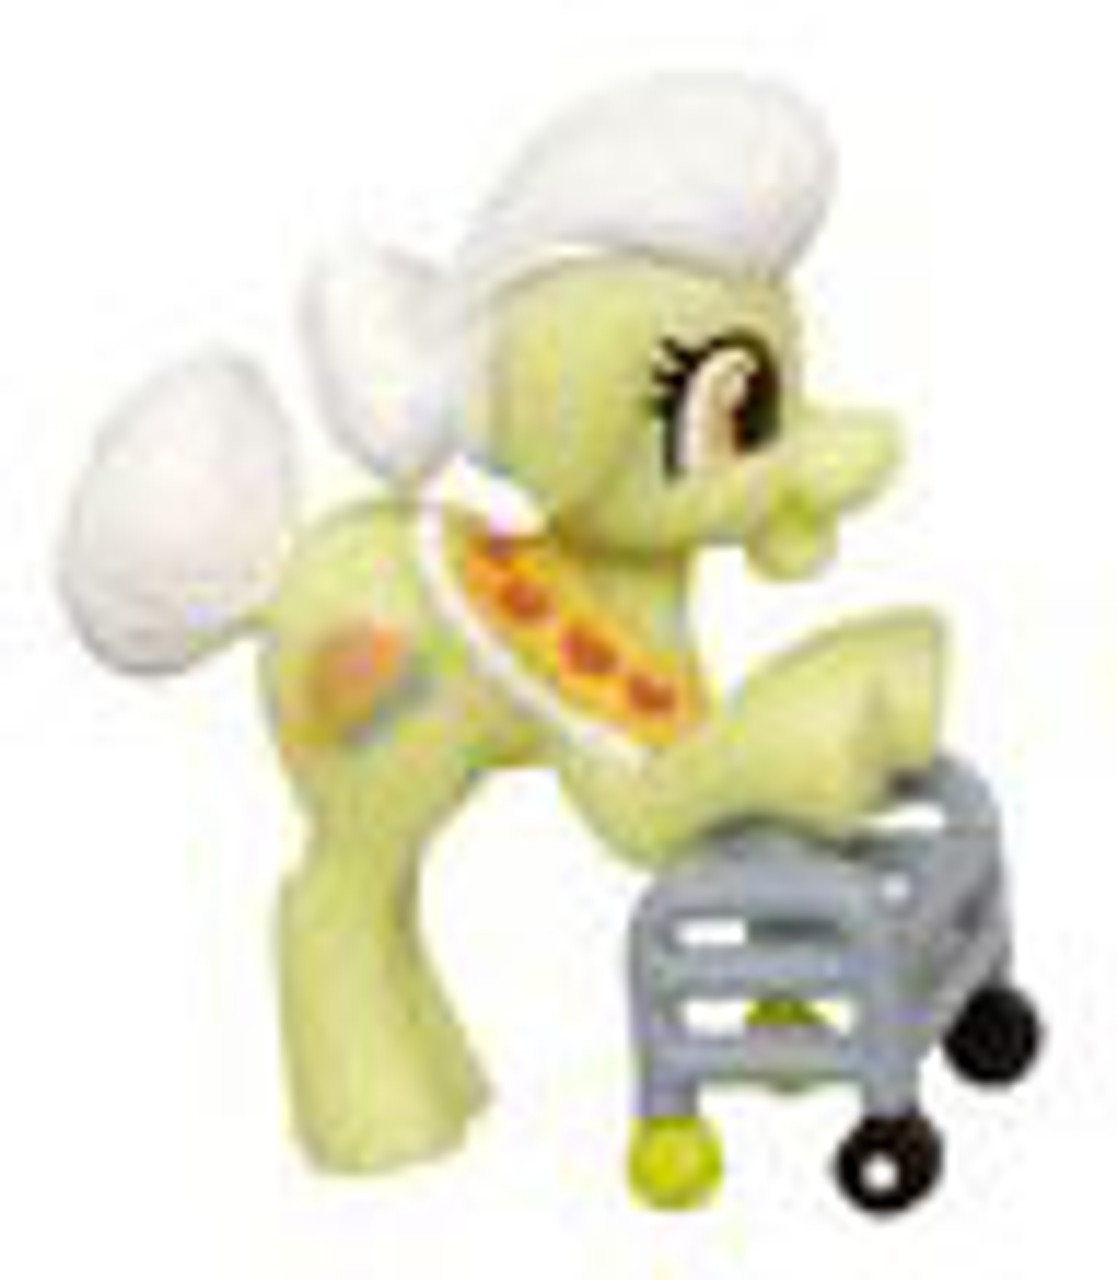 My Little Pony Friendship is Magic 2 Inch Granny Smith PVC Figure